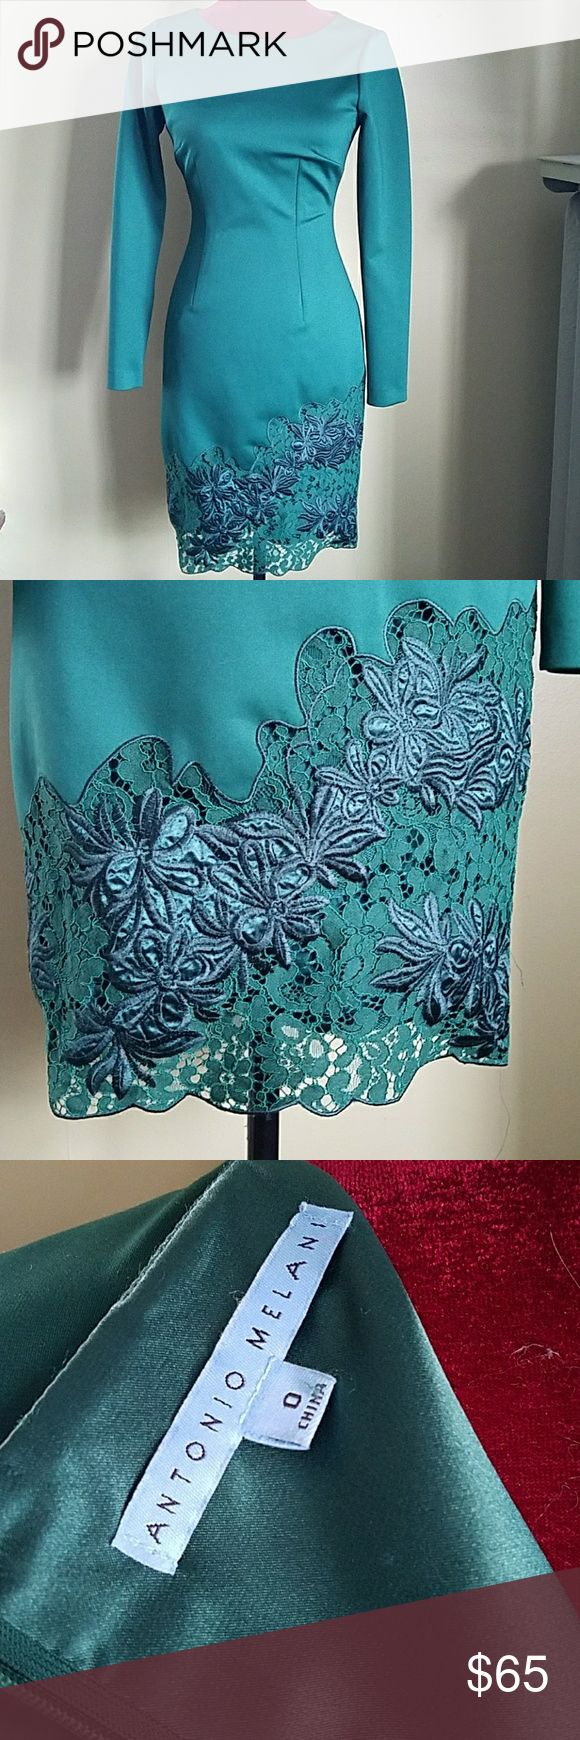 Antonio Melani Green special occasion dress Hunter green special occasion dress with embroidered green and lace detail. Never worn. No tags. ANTONIO MELANI Dresses Long Sleeve